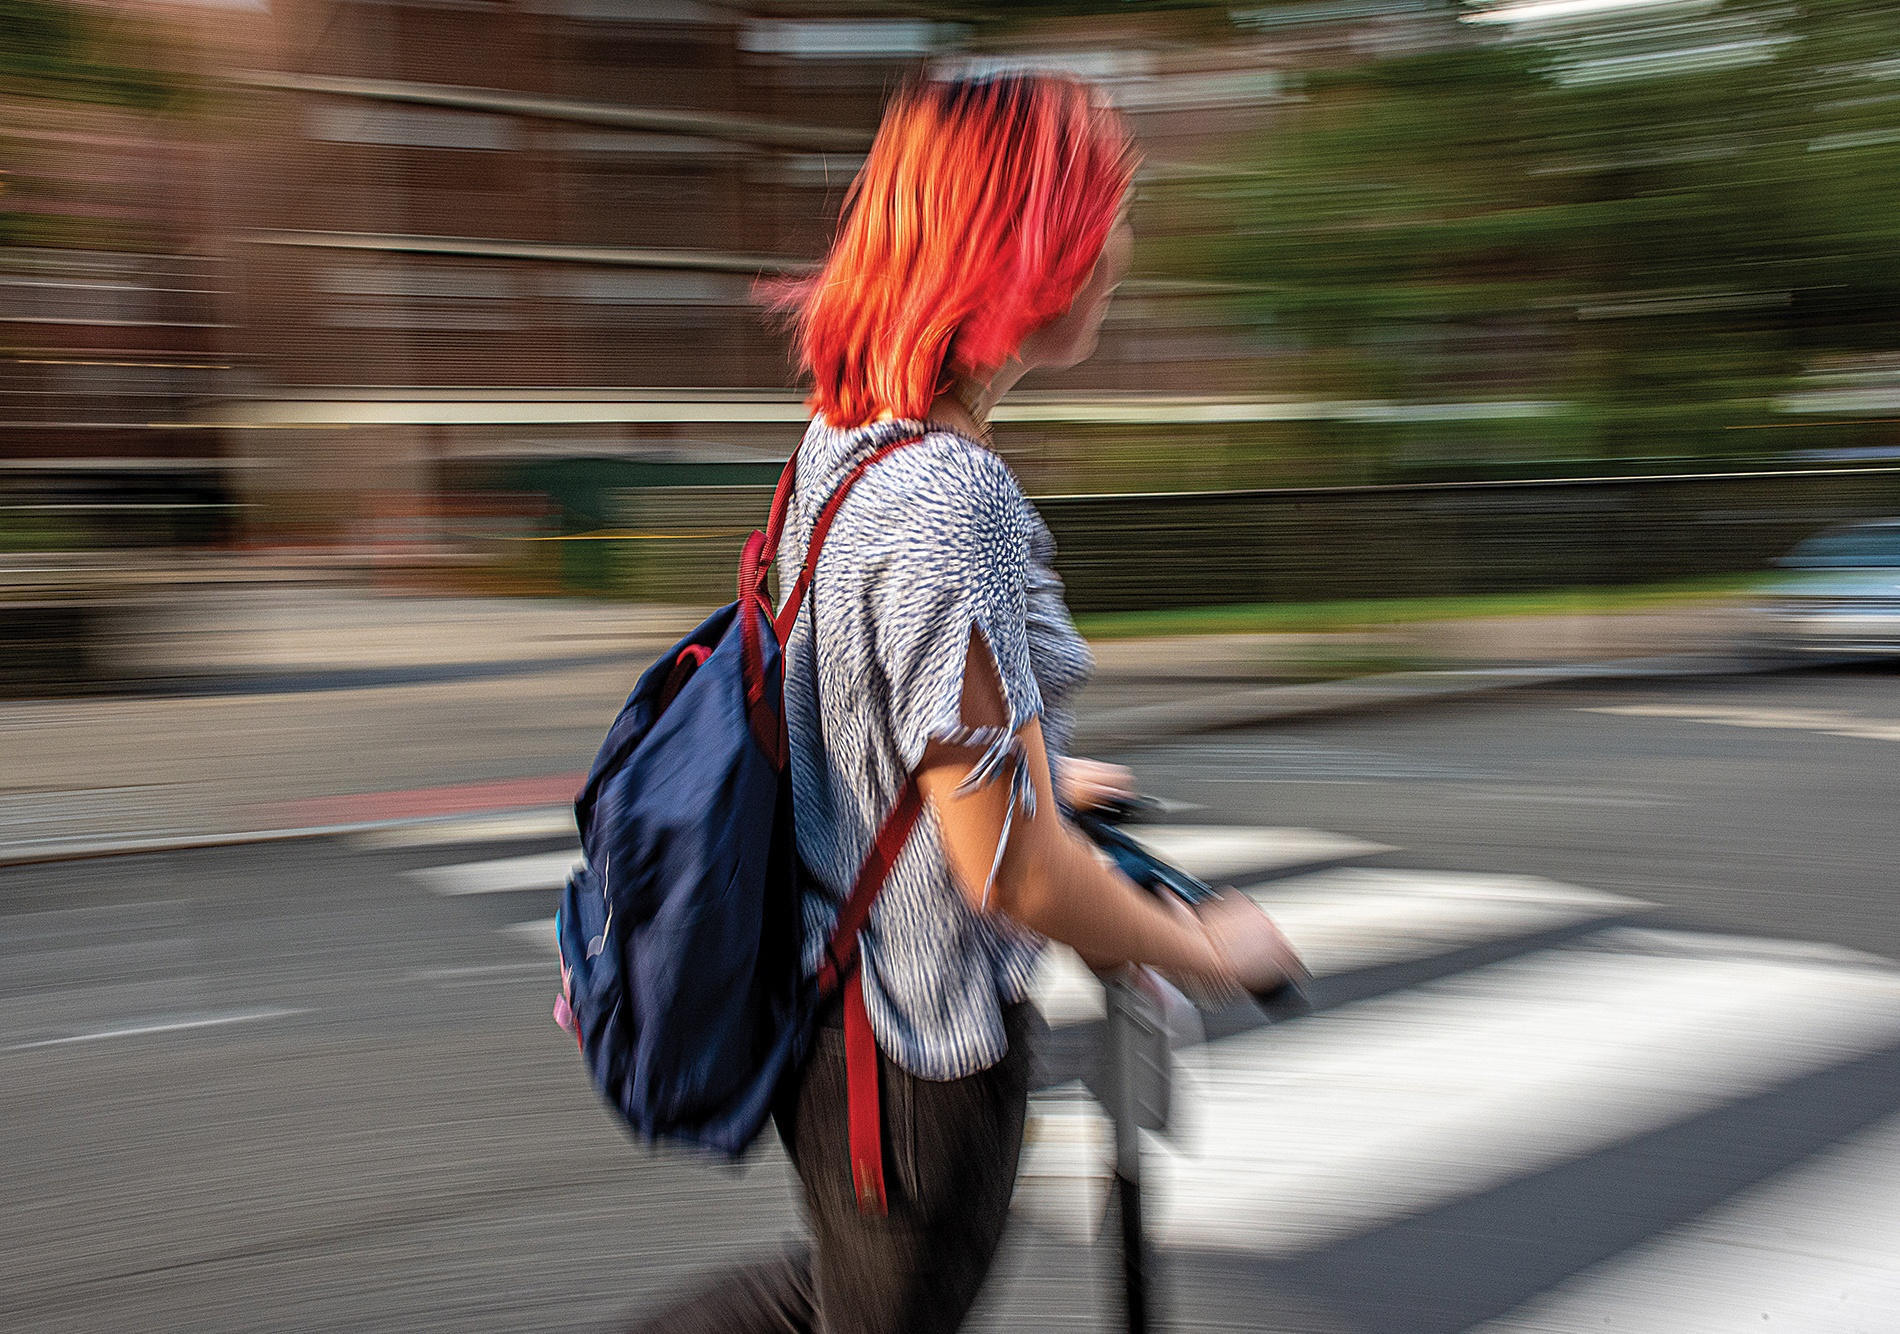 Motion-blurred photo of a student on a scooter